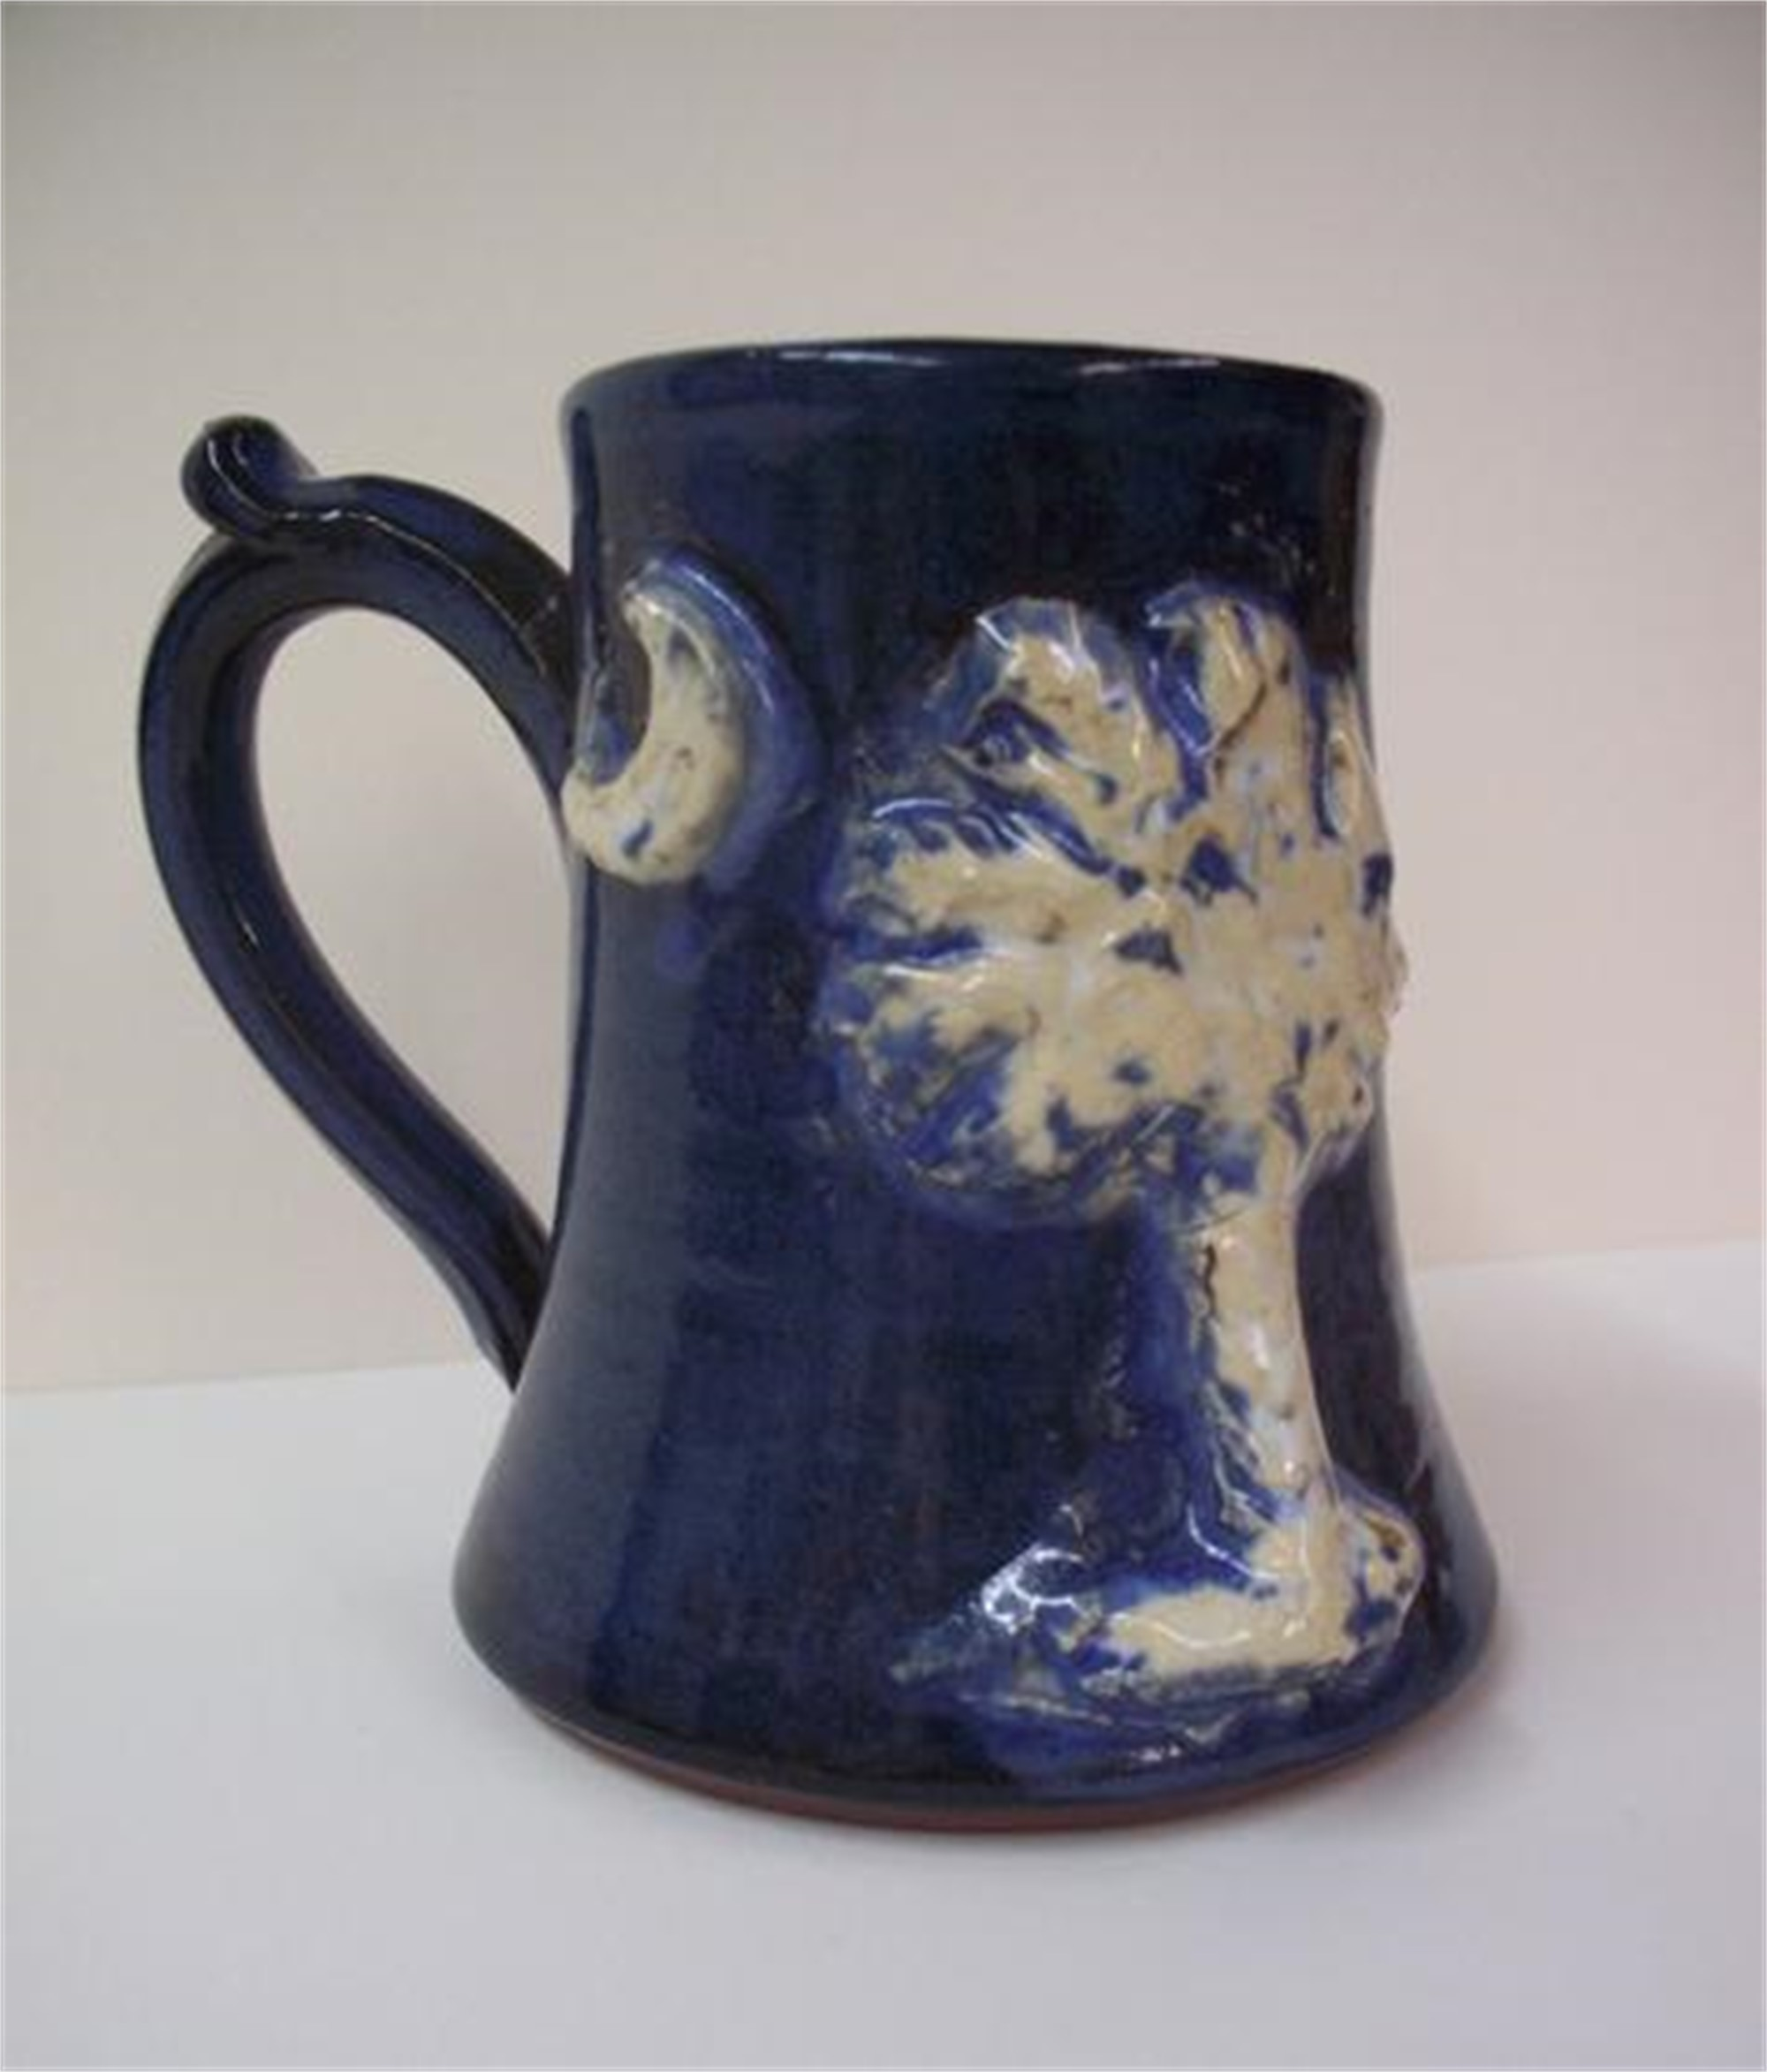 SC Palmetto Mug - Dark Blue by Kate Krause